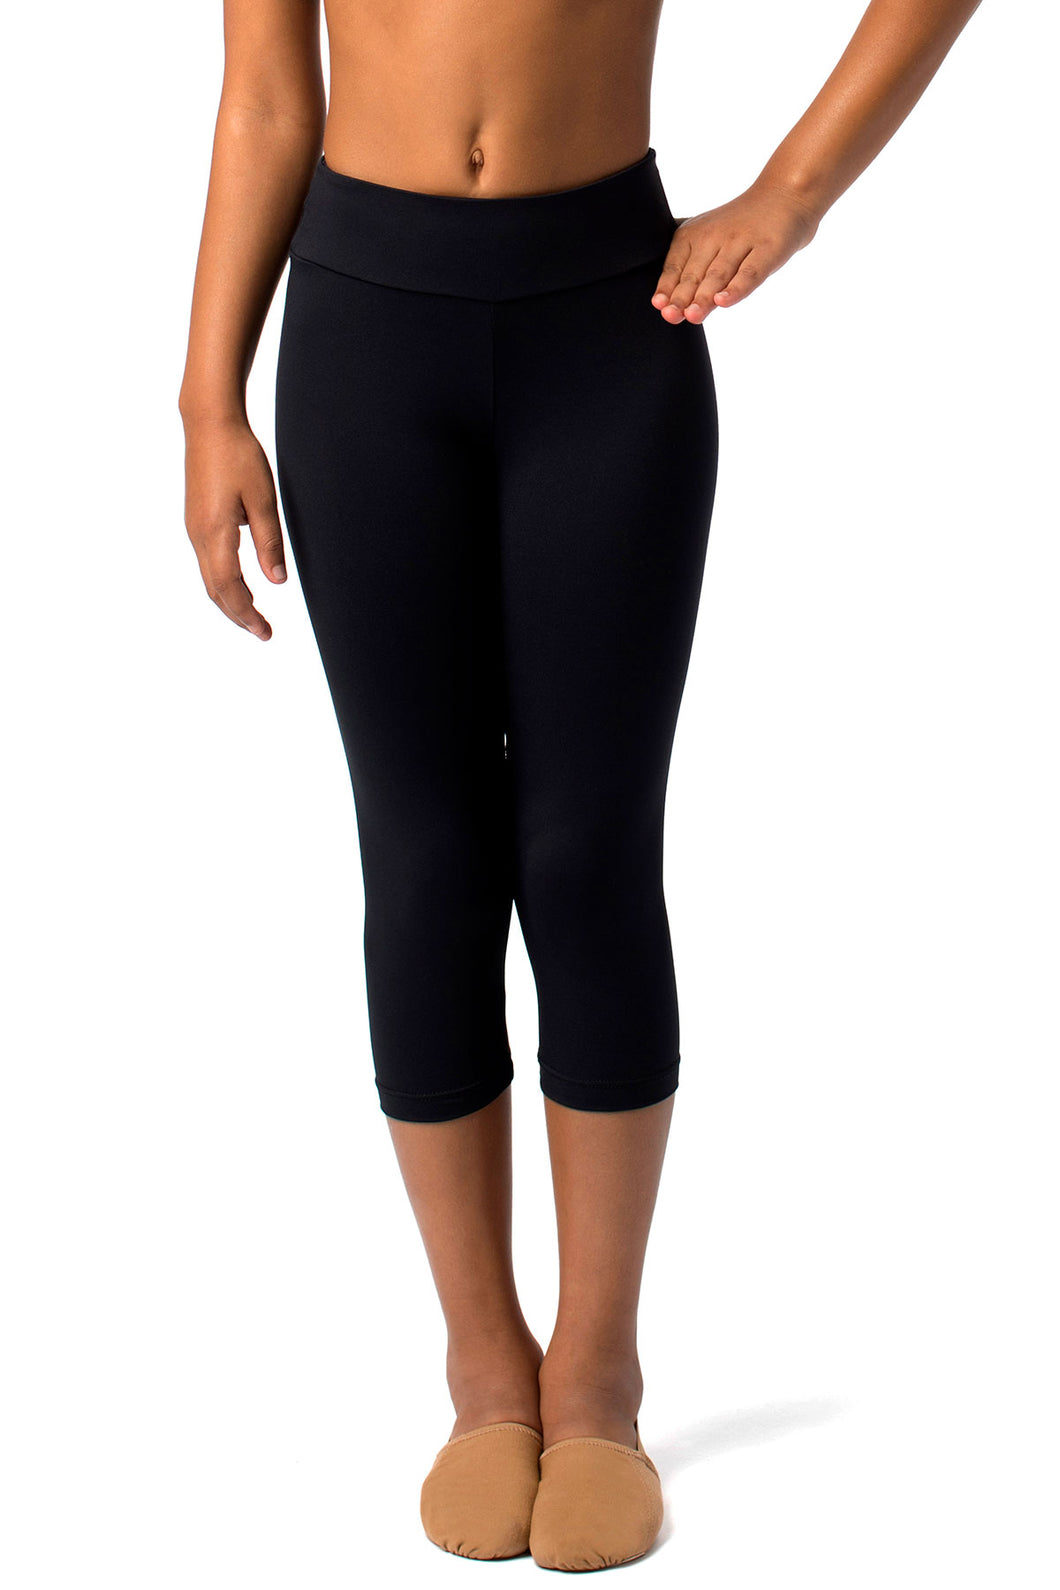 Ekta - Adult Capri Pants - SL151